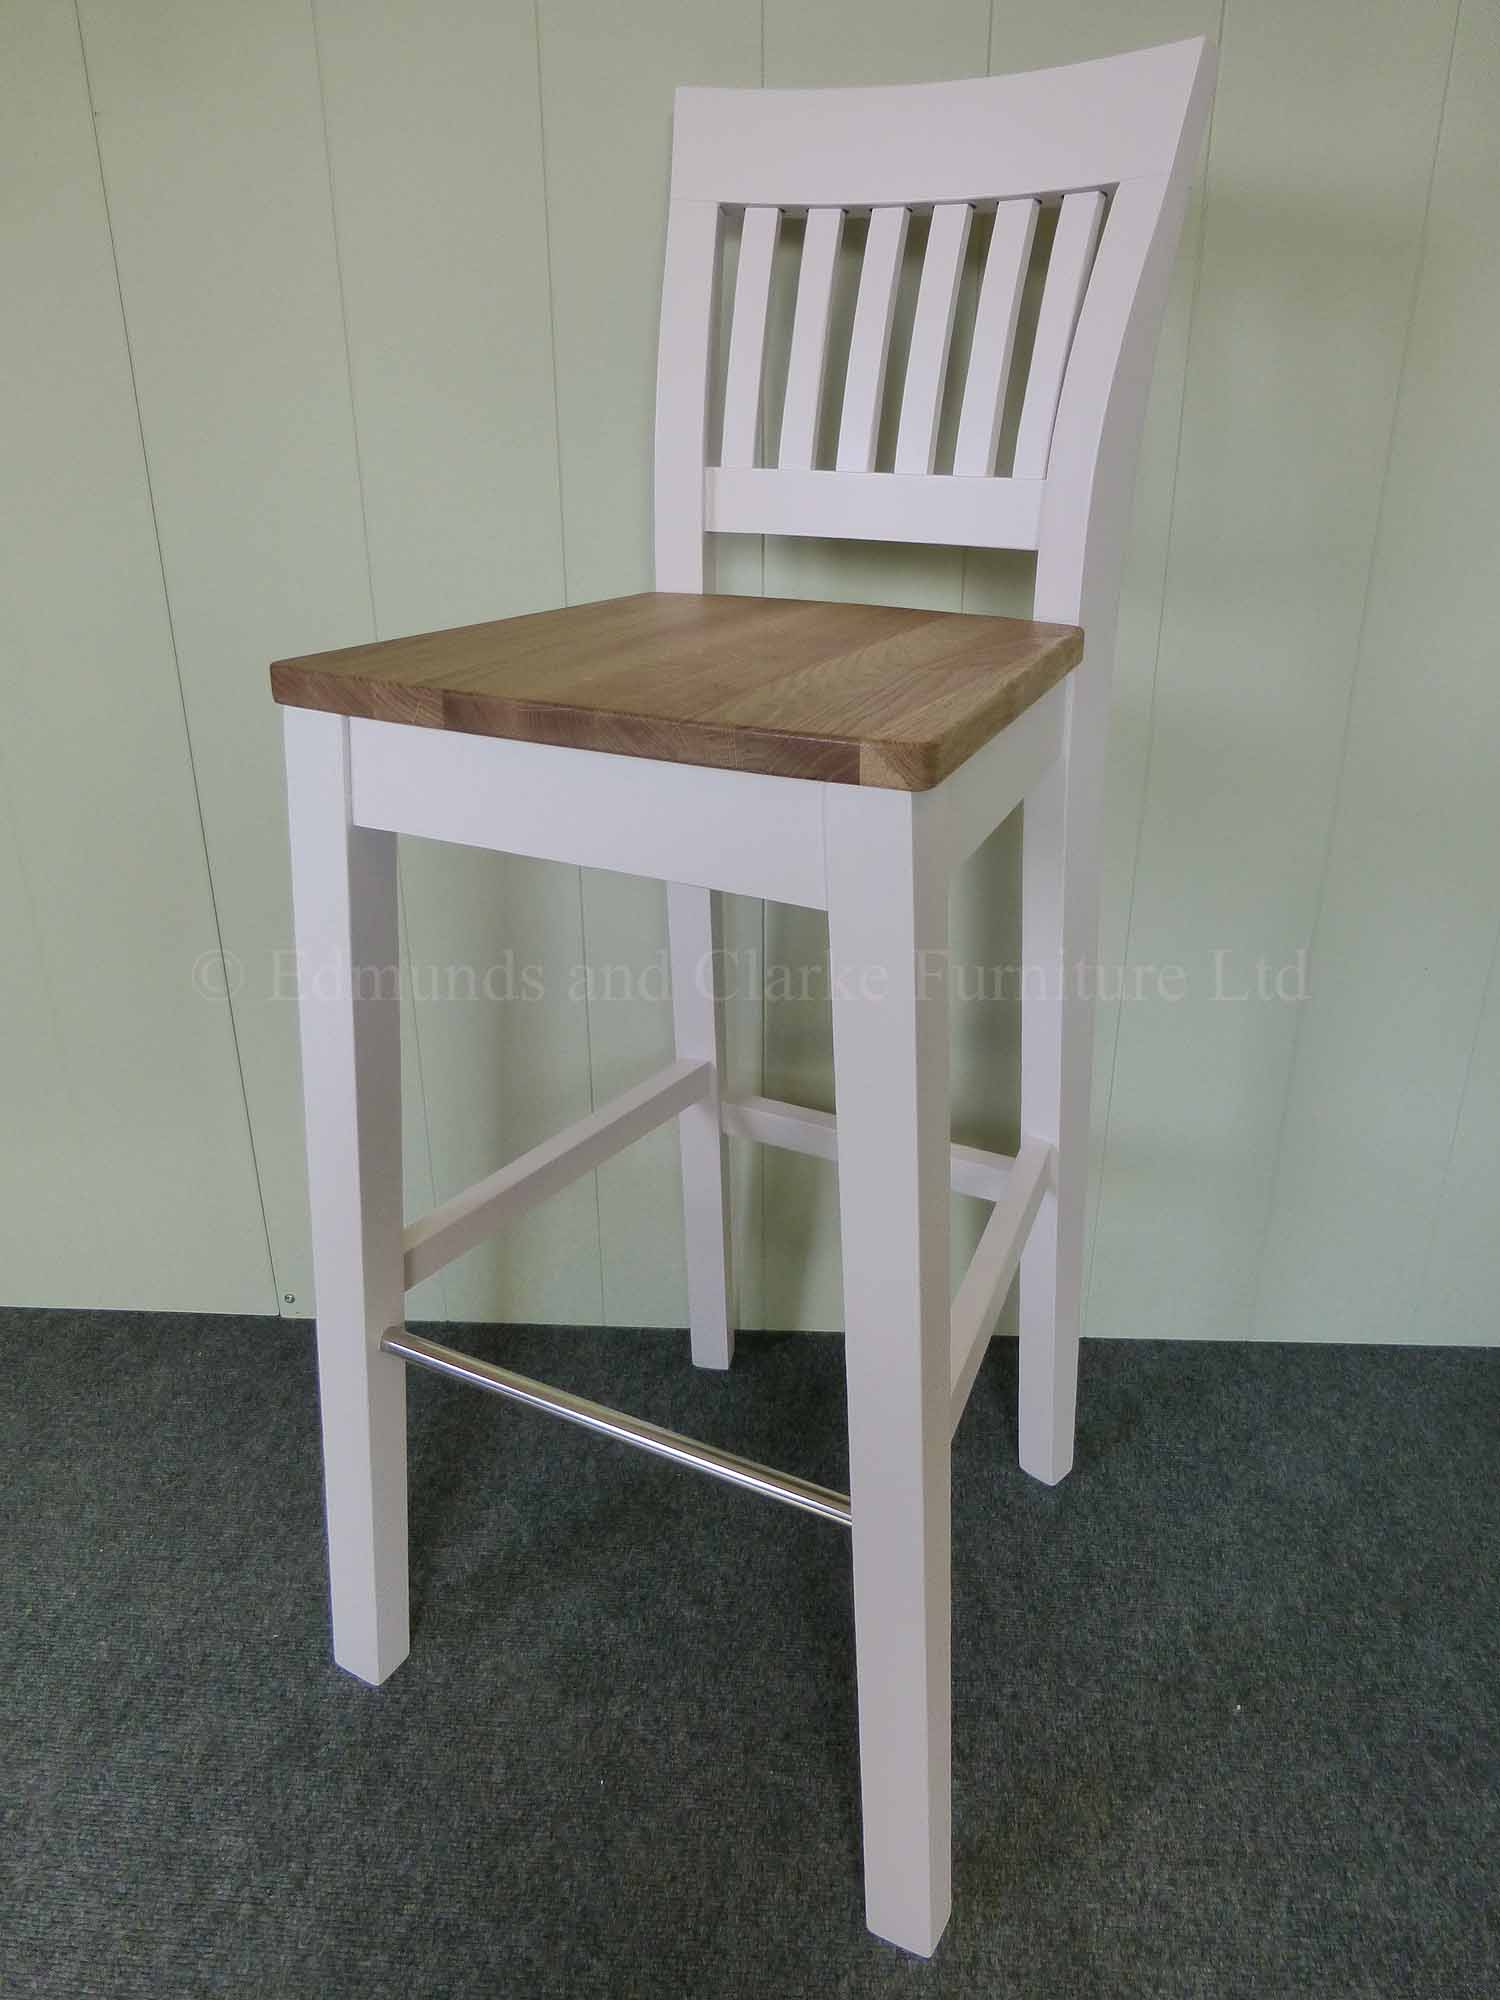 Linden high breakfast bar stool painted white with waxed beech seat